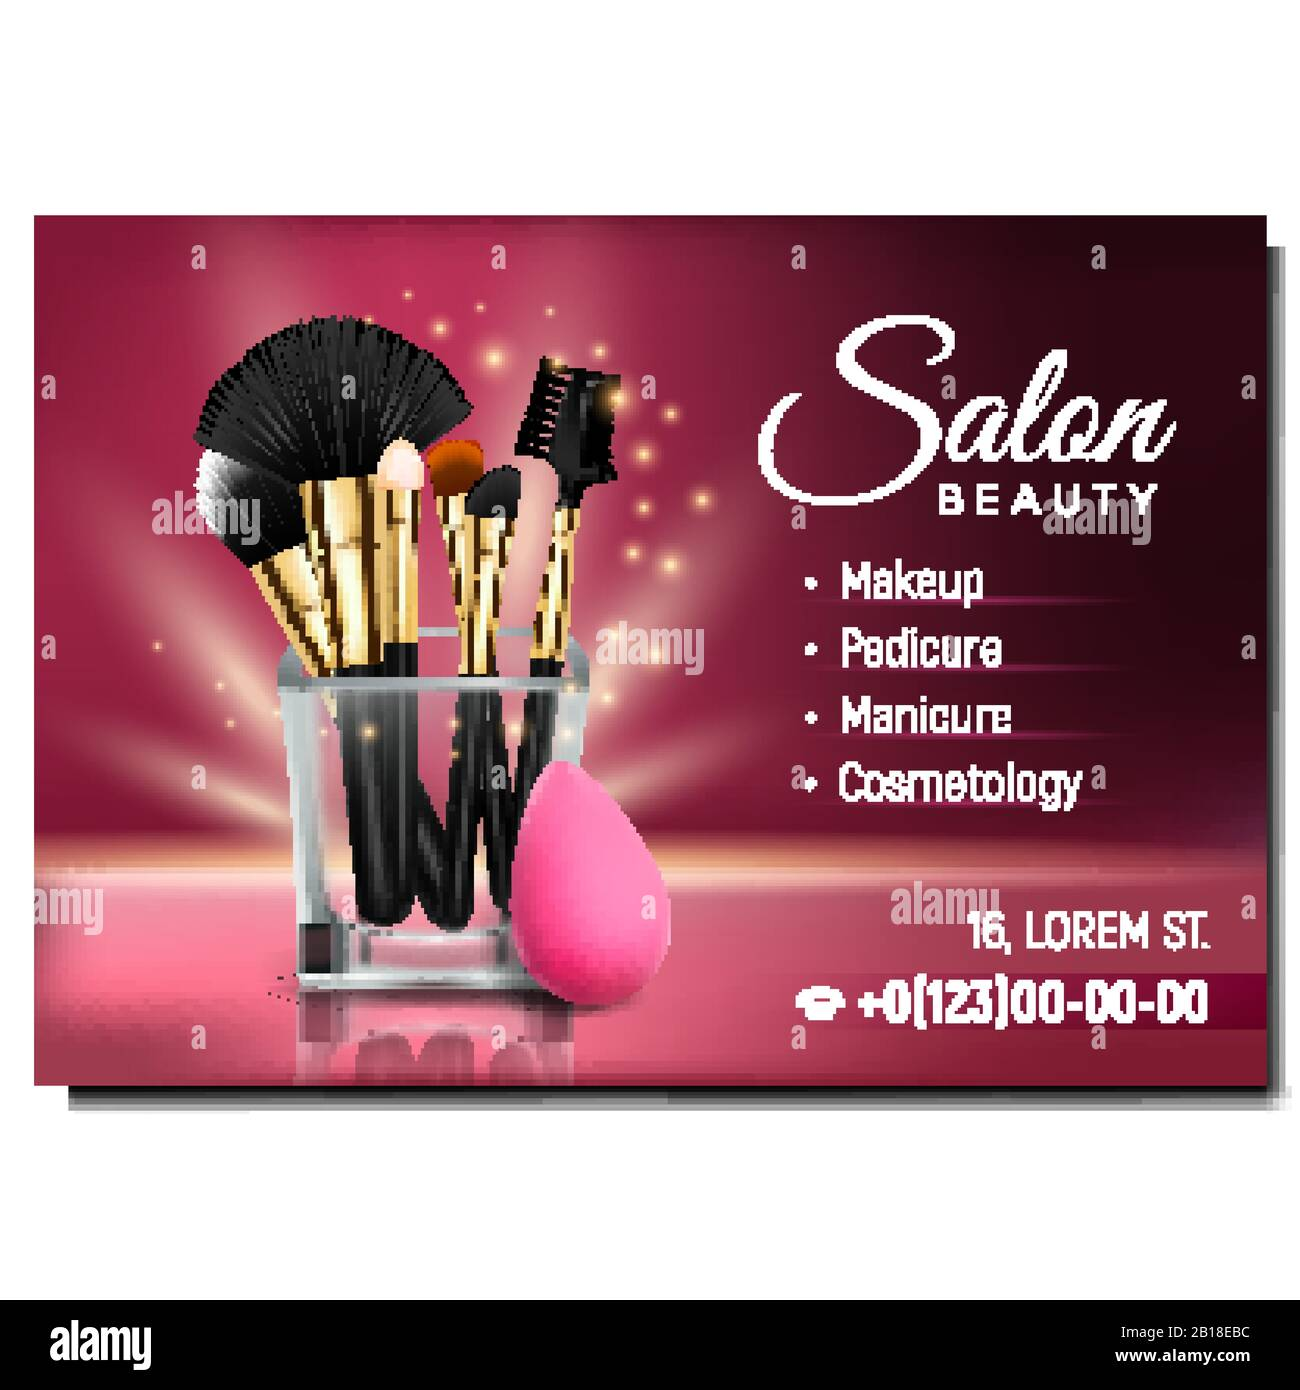 Salon Beauty Cosmetology Advertising Banner Vector Stock Vector Image Art Alamy